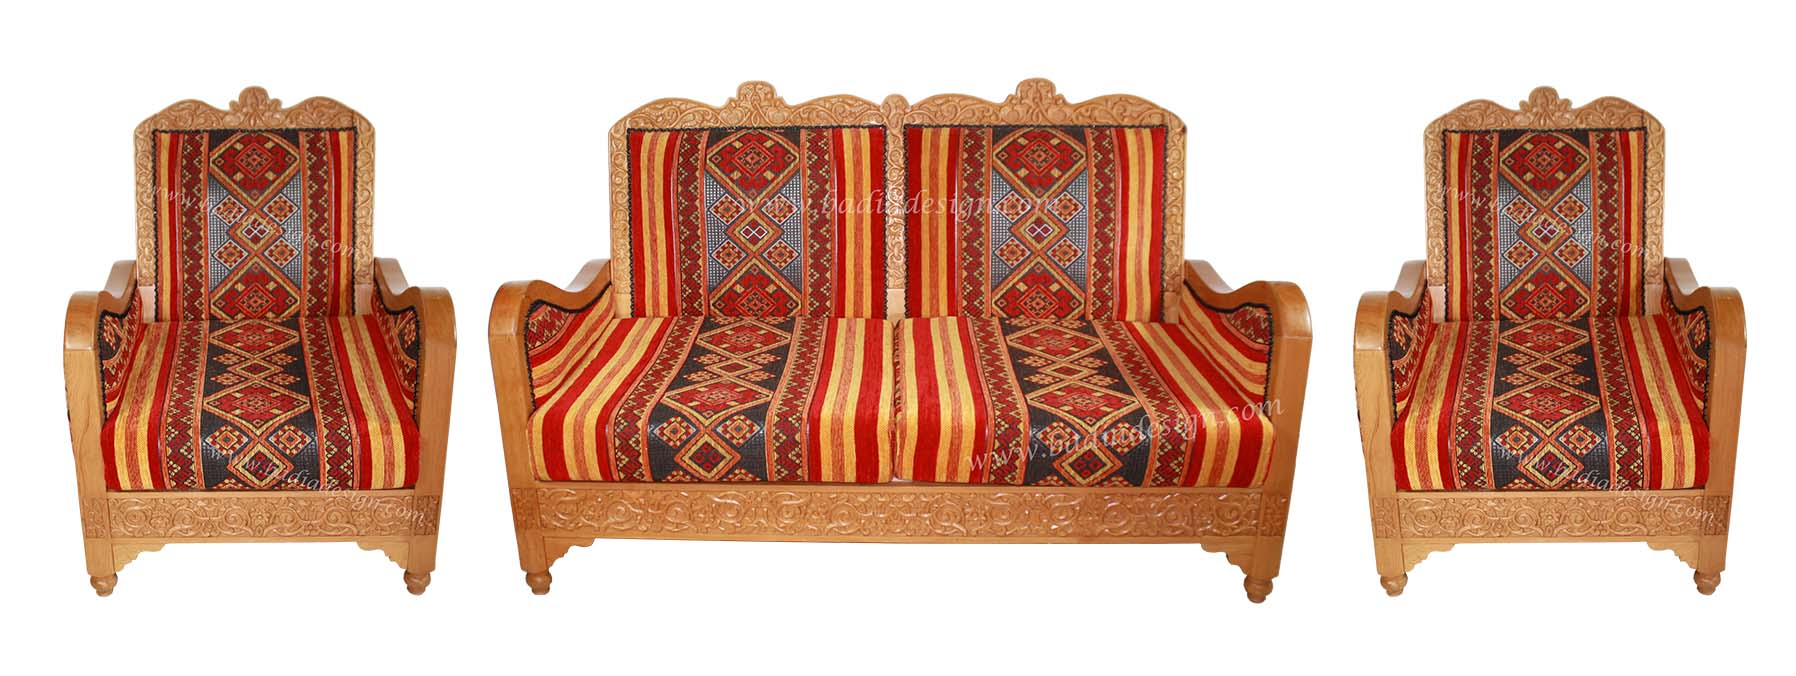 Moroccan Loveseat and Chair Set